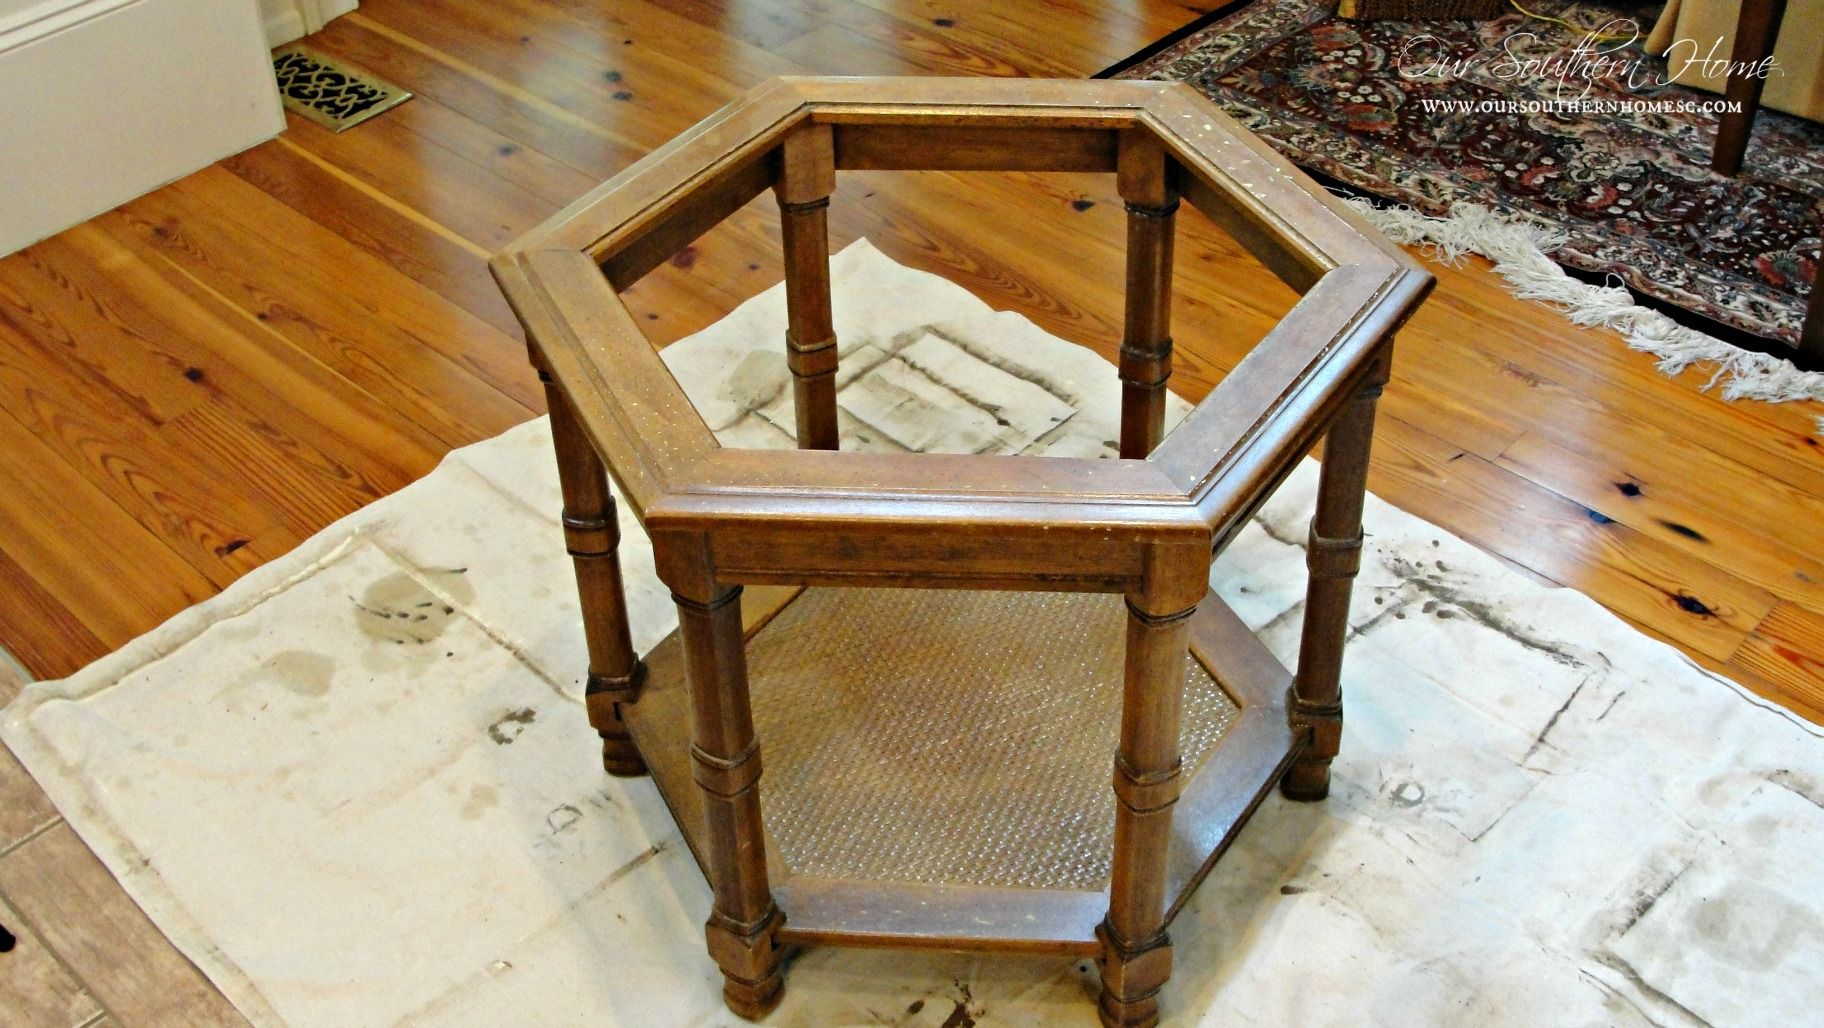 images about refinished thrift store finds on Pinterest